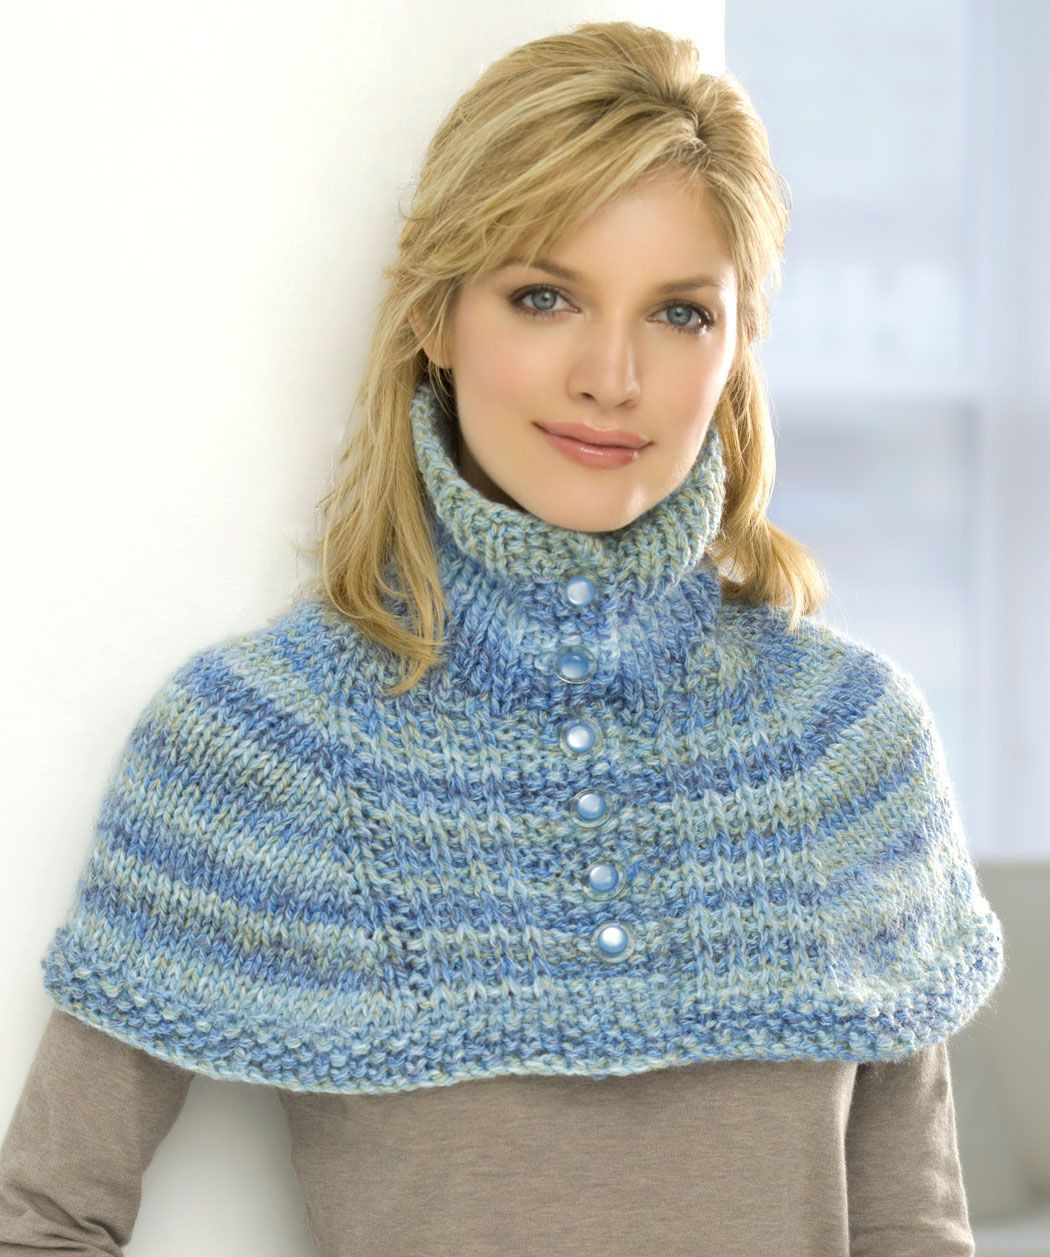 Inspirational Free Pattern Knit Neck Warmer Capelet Knitted Neck Warmer Of Amazing 47 Ideas Knitted Neck Warmer